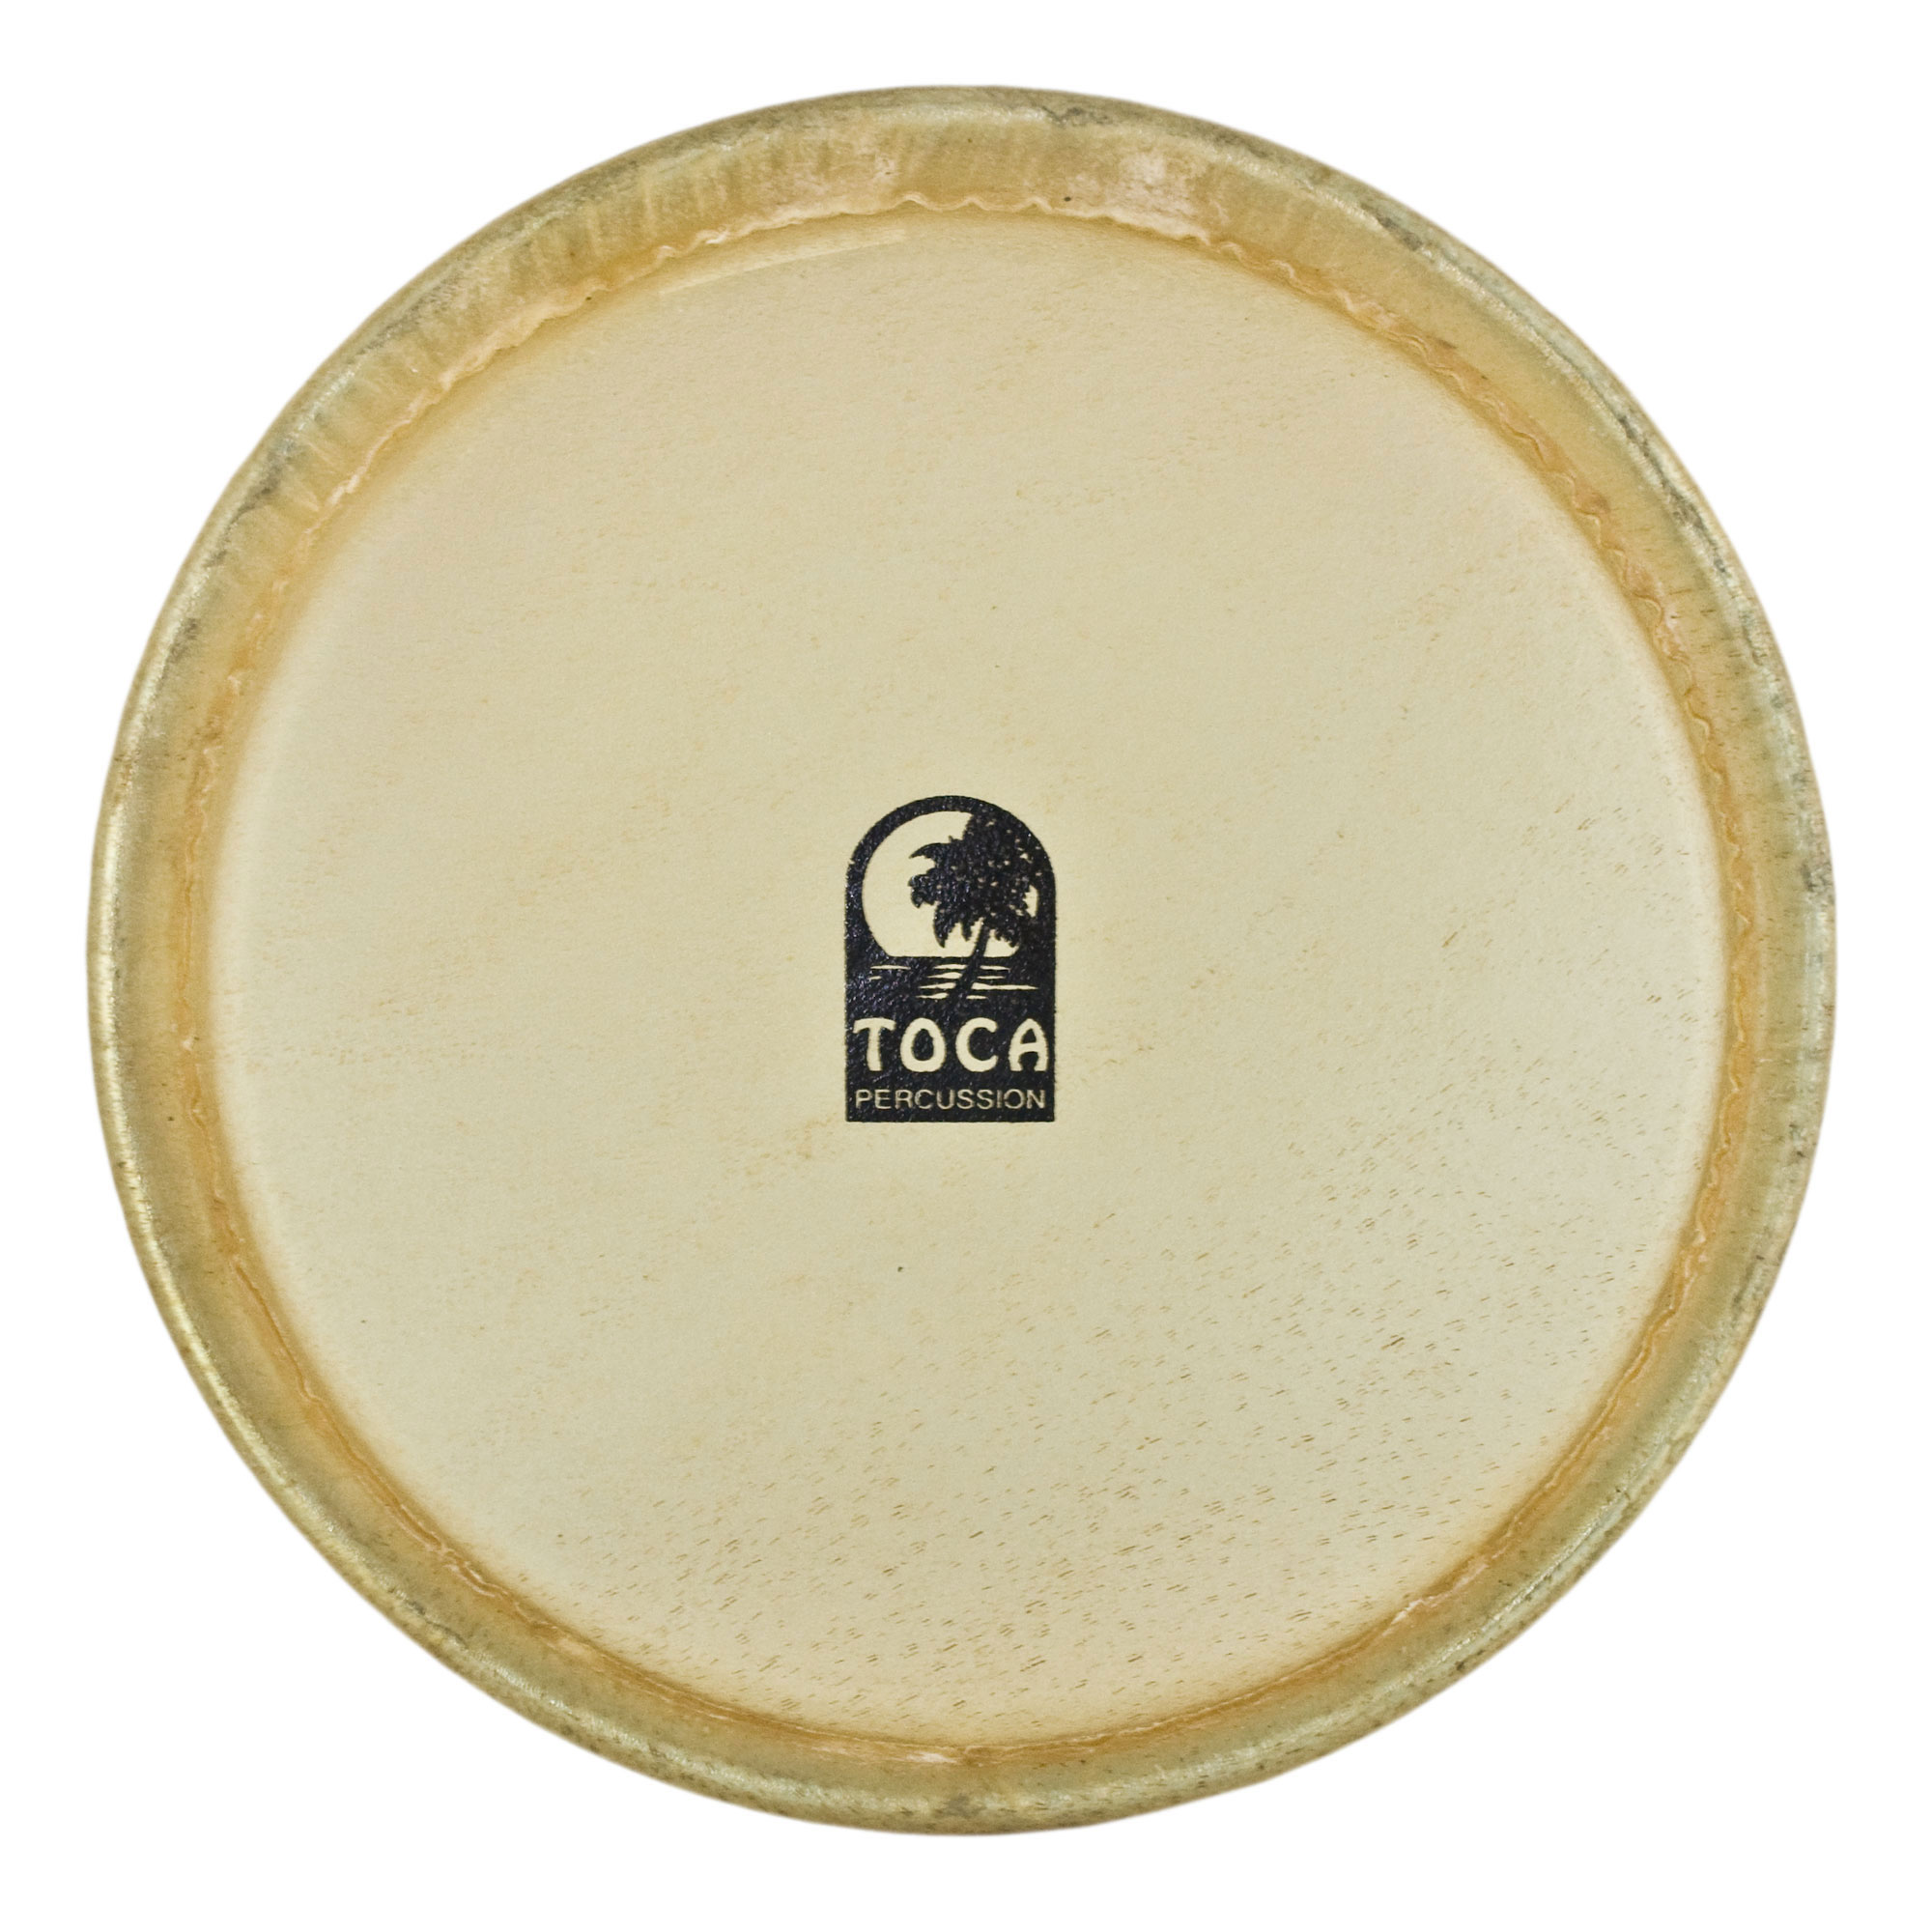 "Toca 11.75"" Traditional Rawhide Conga Drum Head"